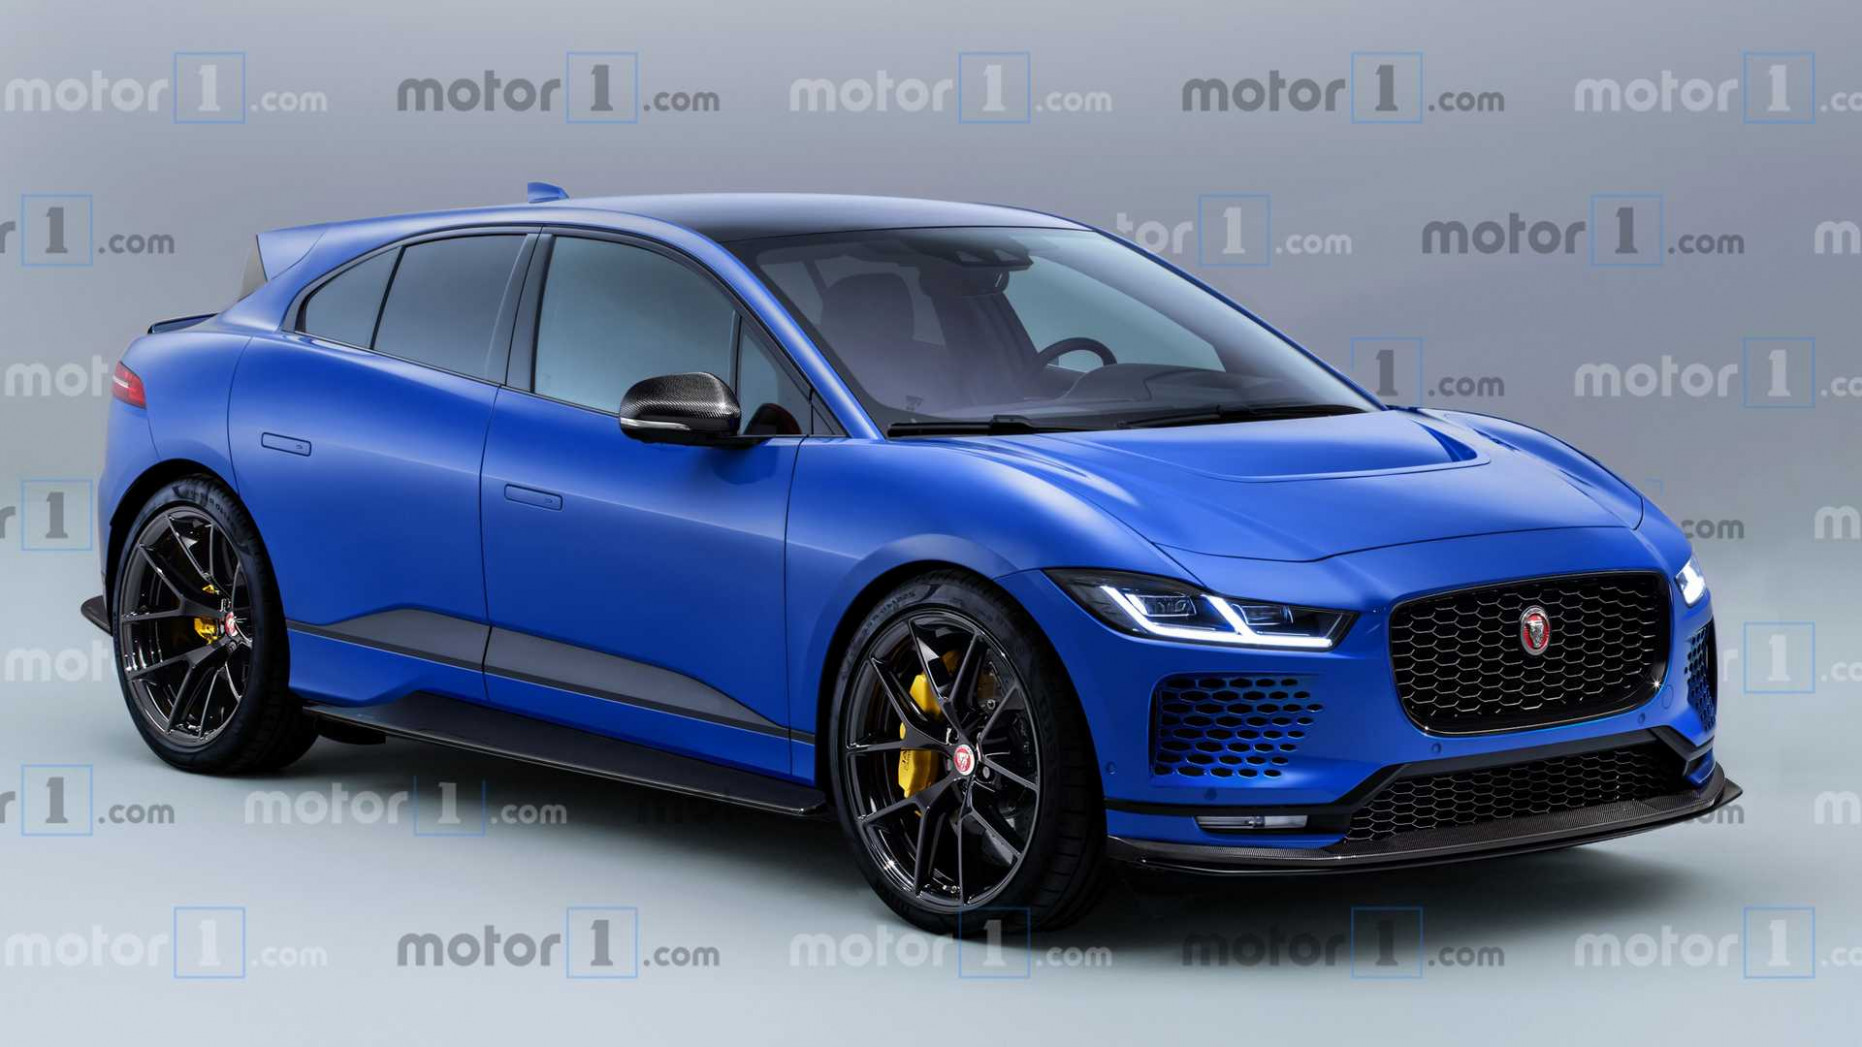 Jaguar I-Pace SVR Rendering Previews The Performance Electric SUV - jaguar i-pace electric cars 2020